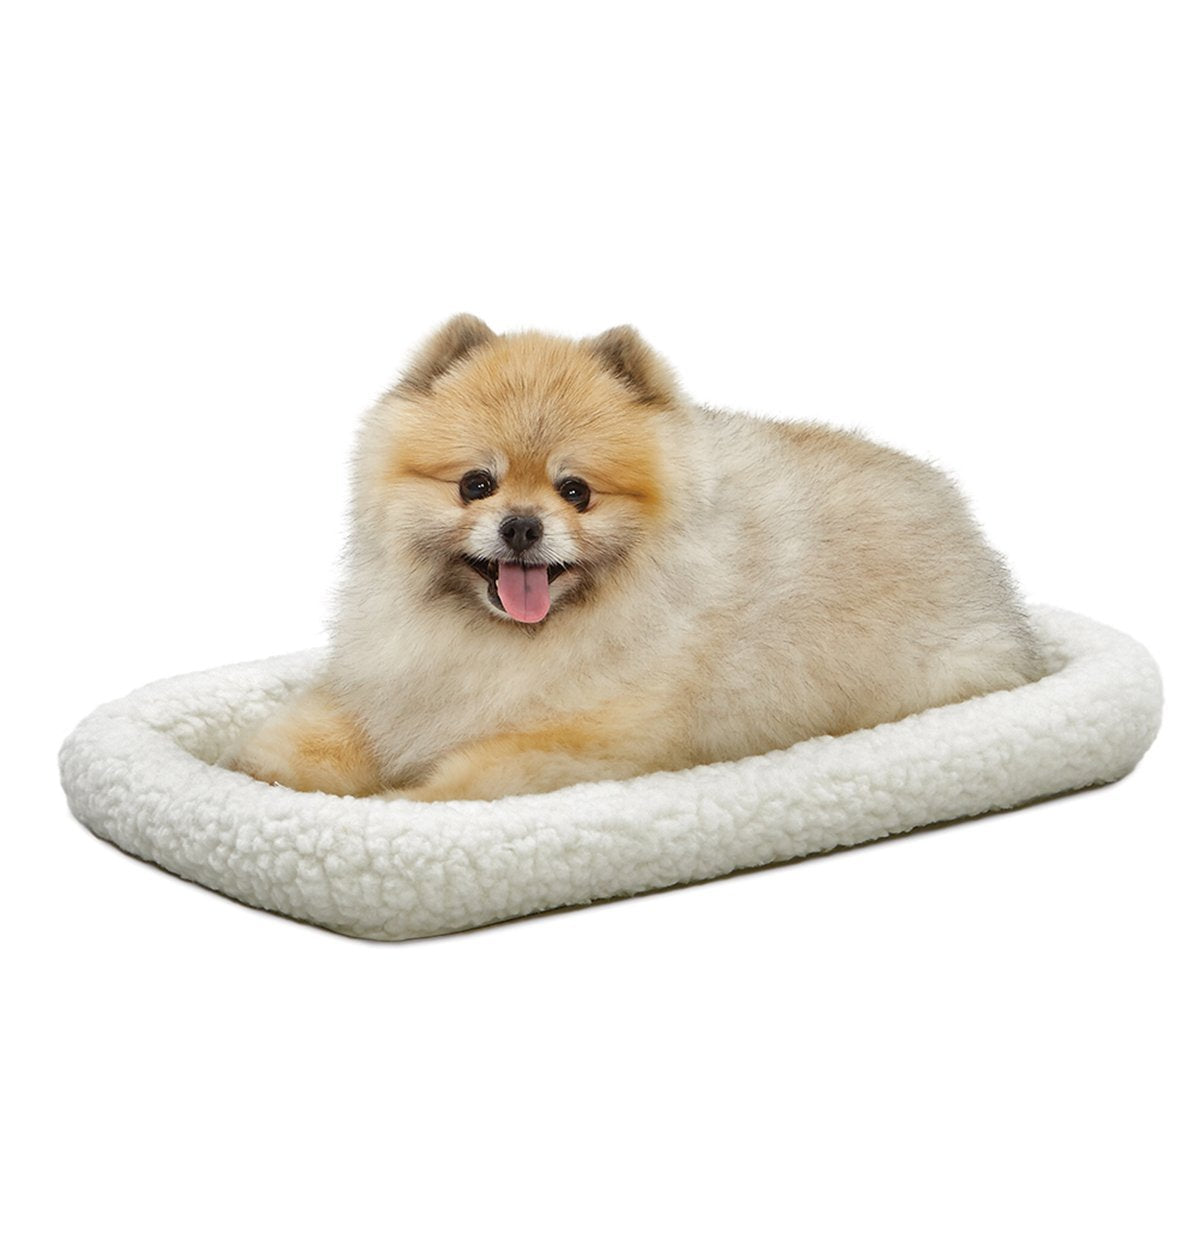 Midwest QT40222 Quiet Time Fleece Dog Crate Bed from Midwest